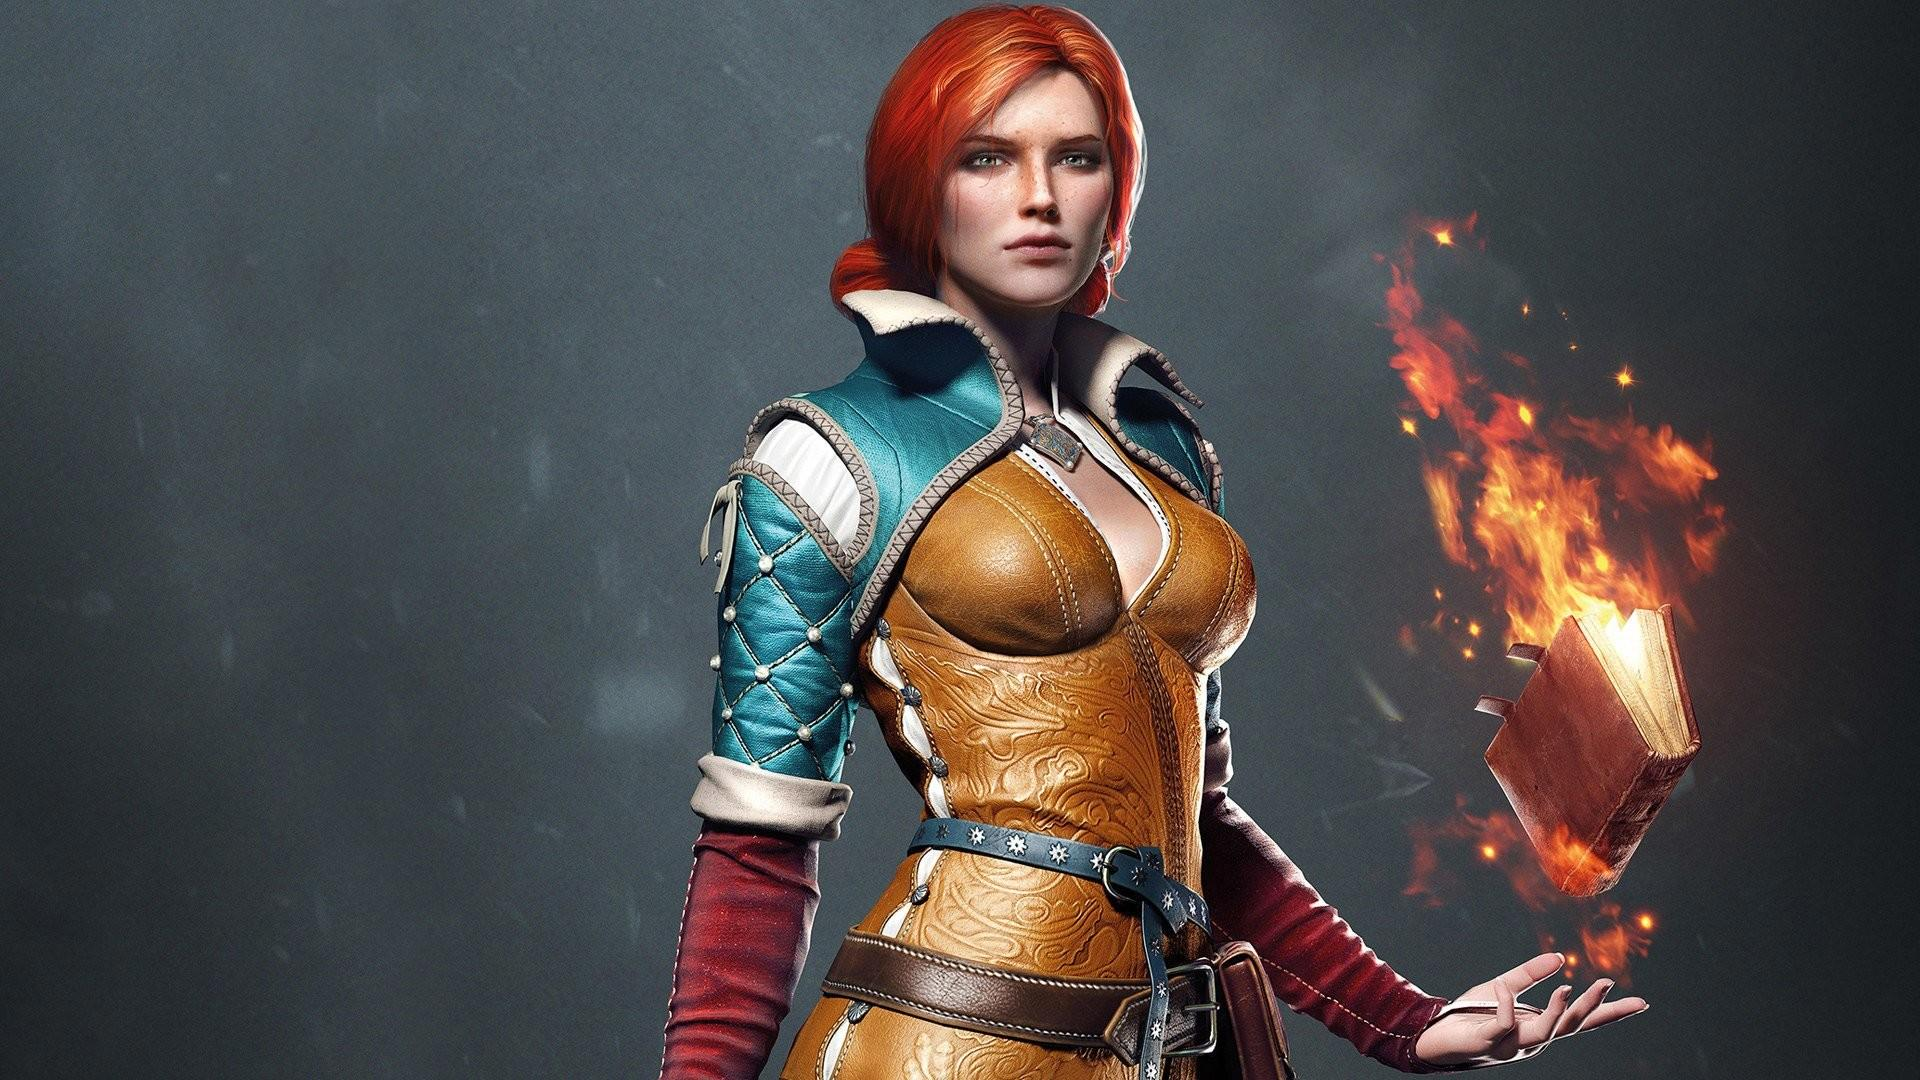 Download The Witcher 3 Triss Wallpaper Hd Backgrounds